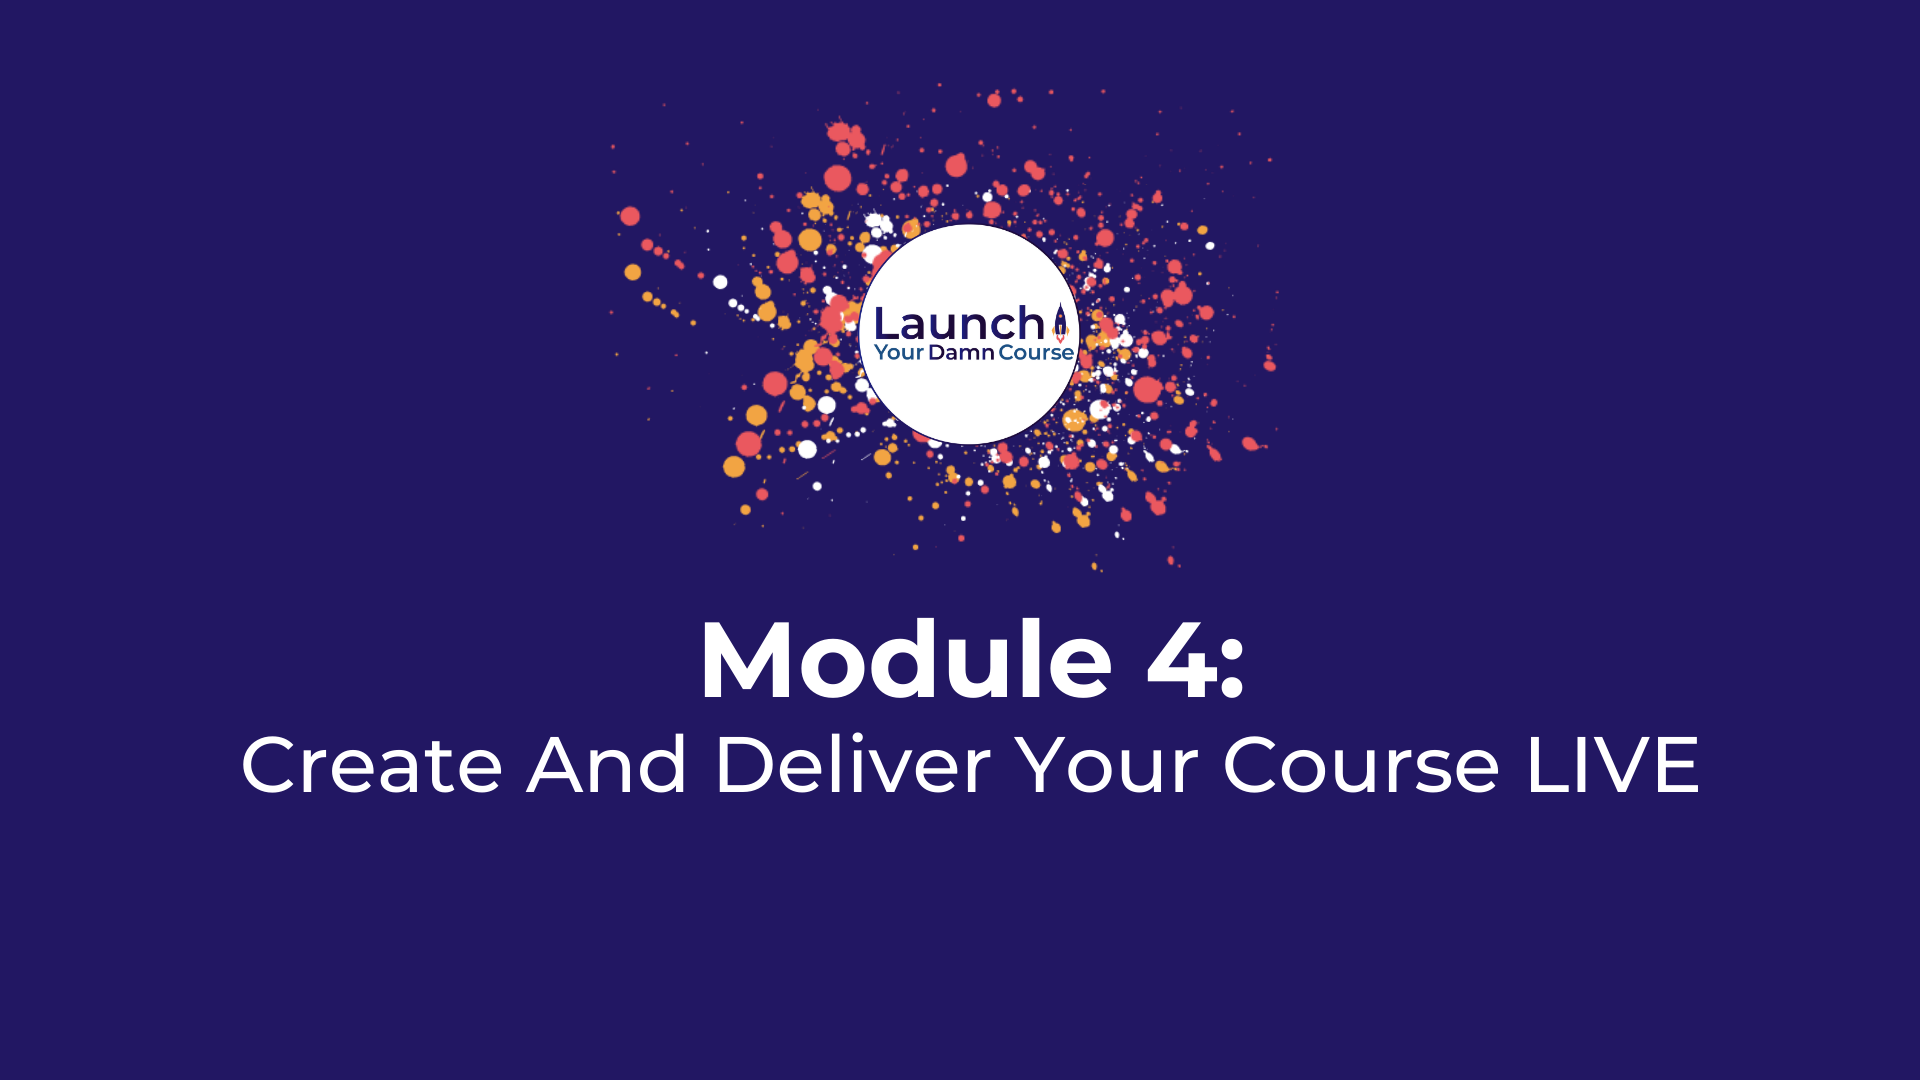 Module 4 - Create And Deliver Your Course LIVE